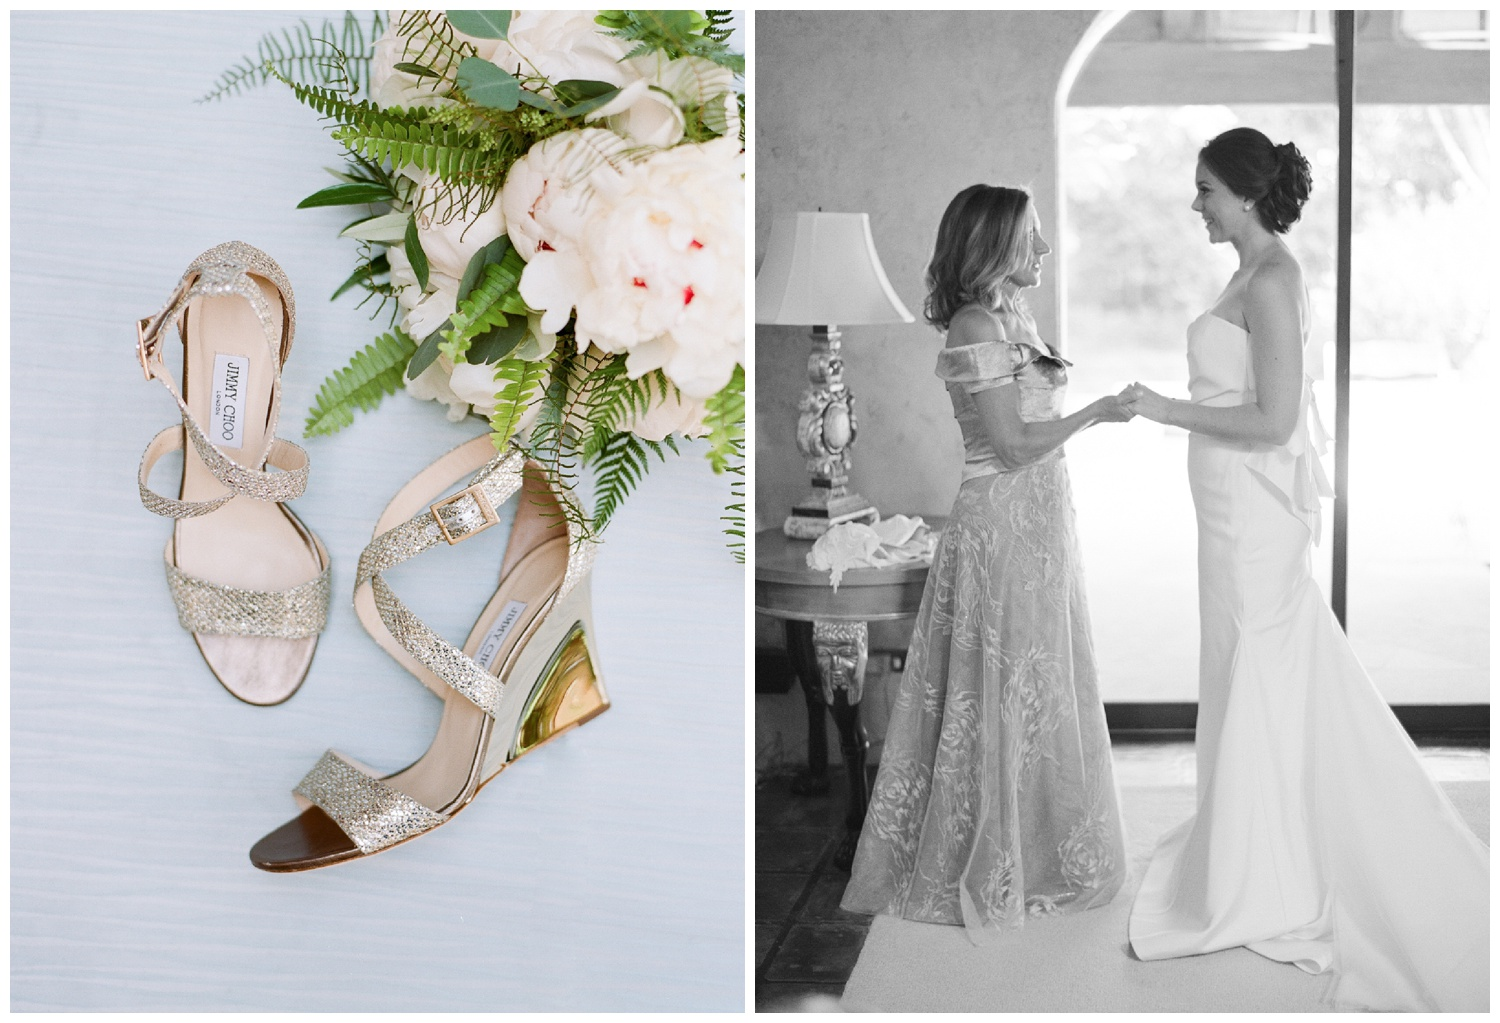 Jimmy Choo heels and the bride getting ready in a Vera Wang contemporary wedding gown; Sylvie Gil Photography